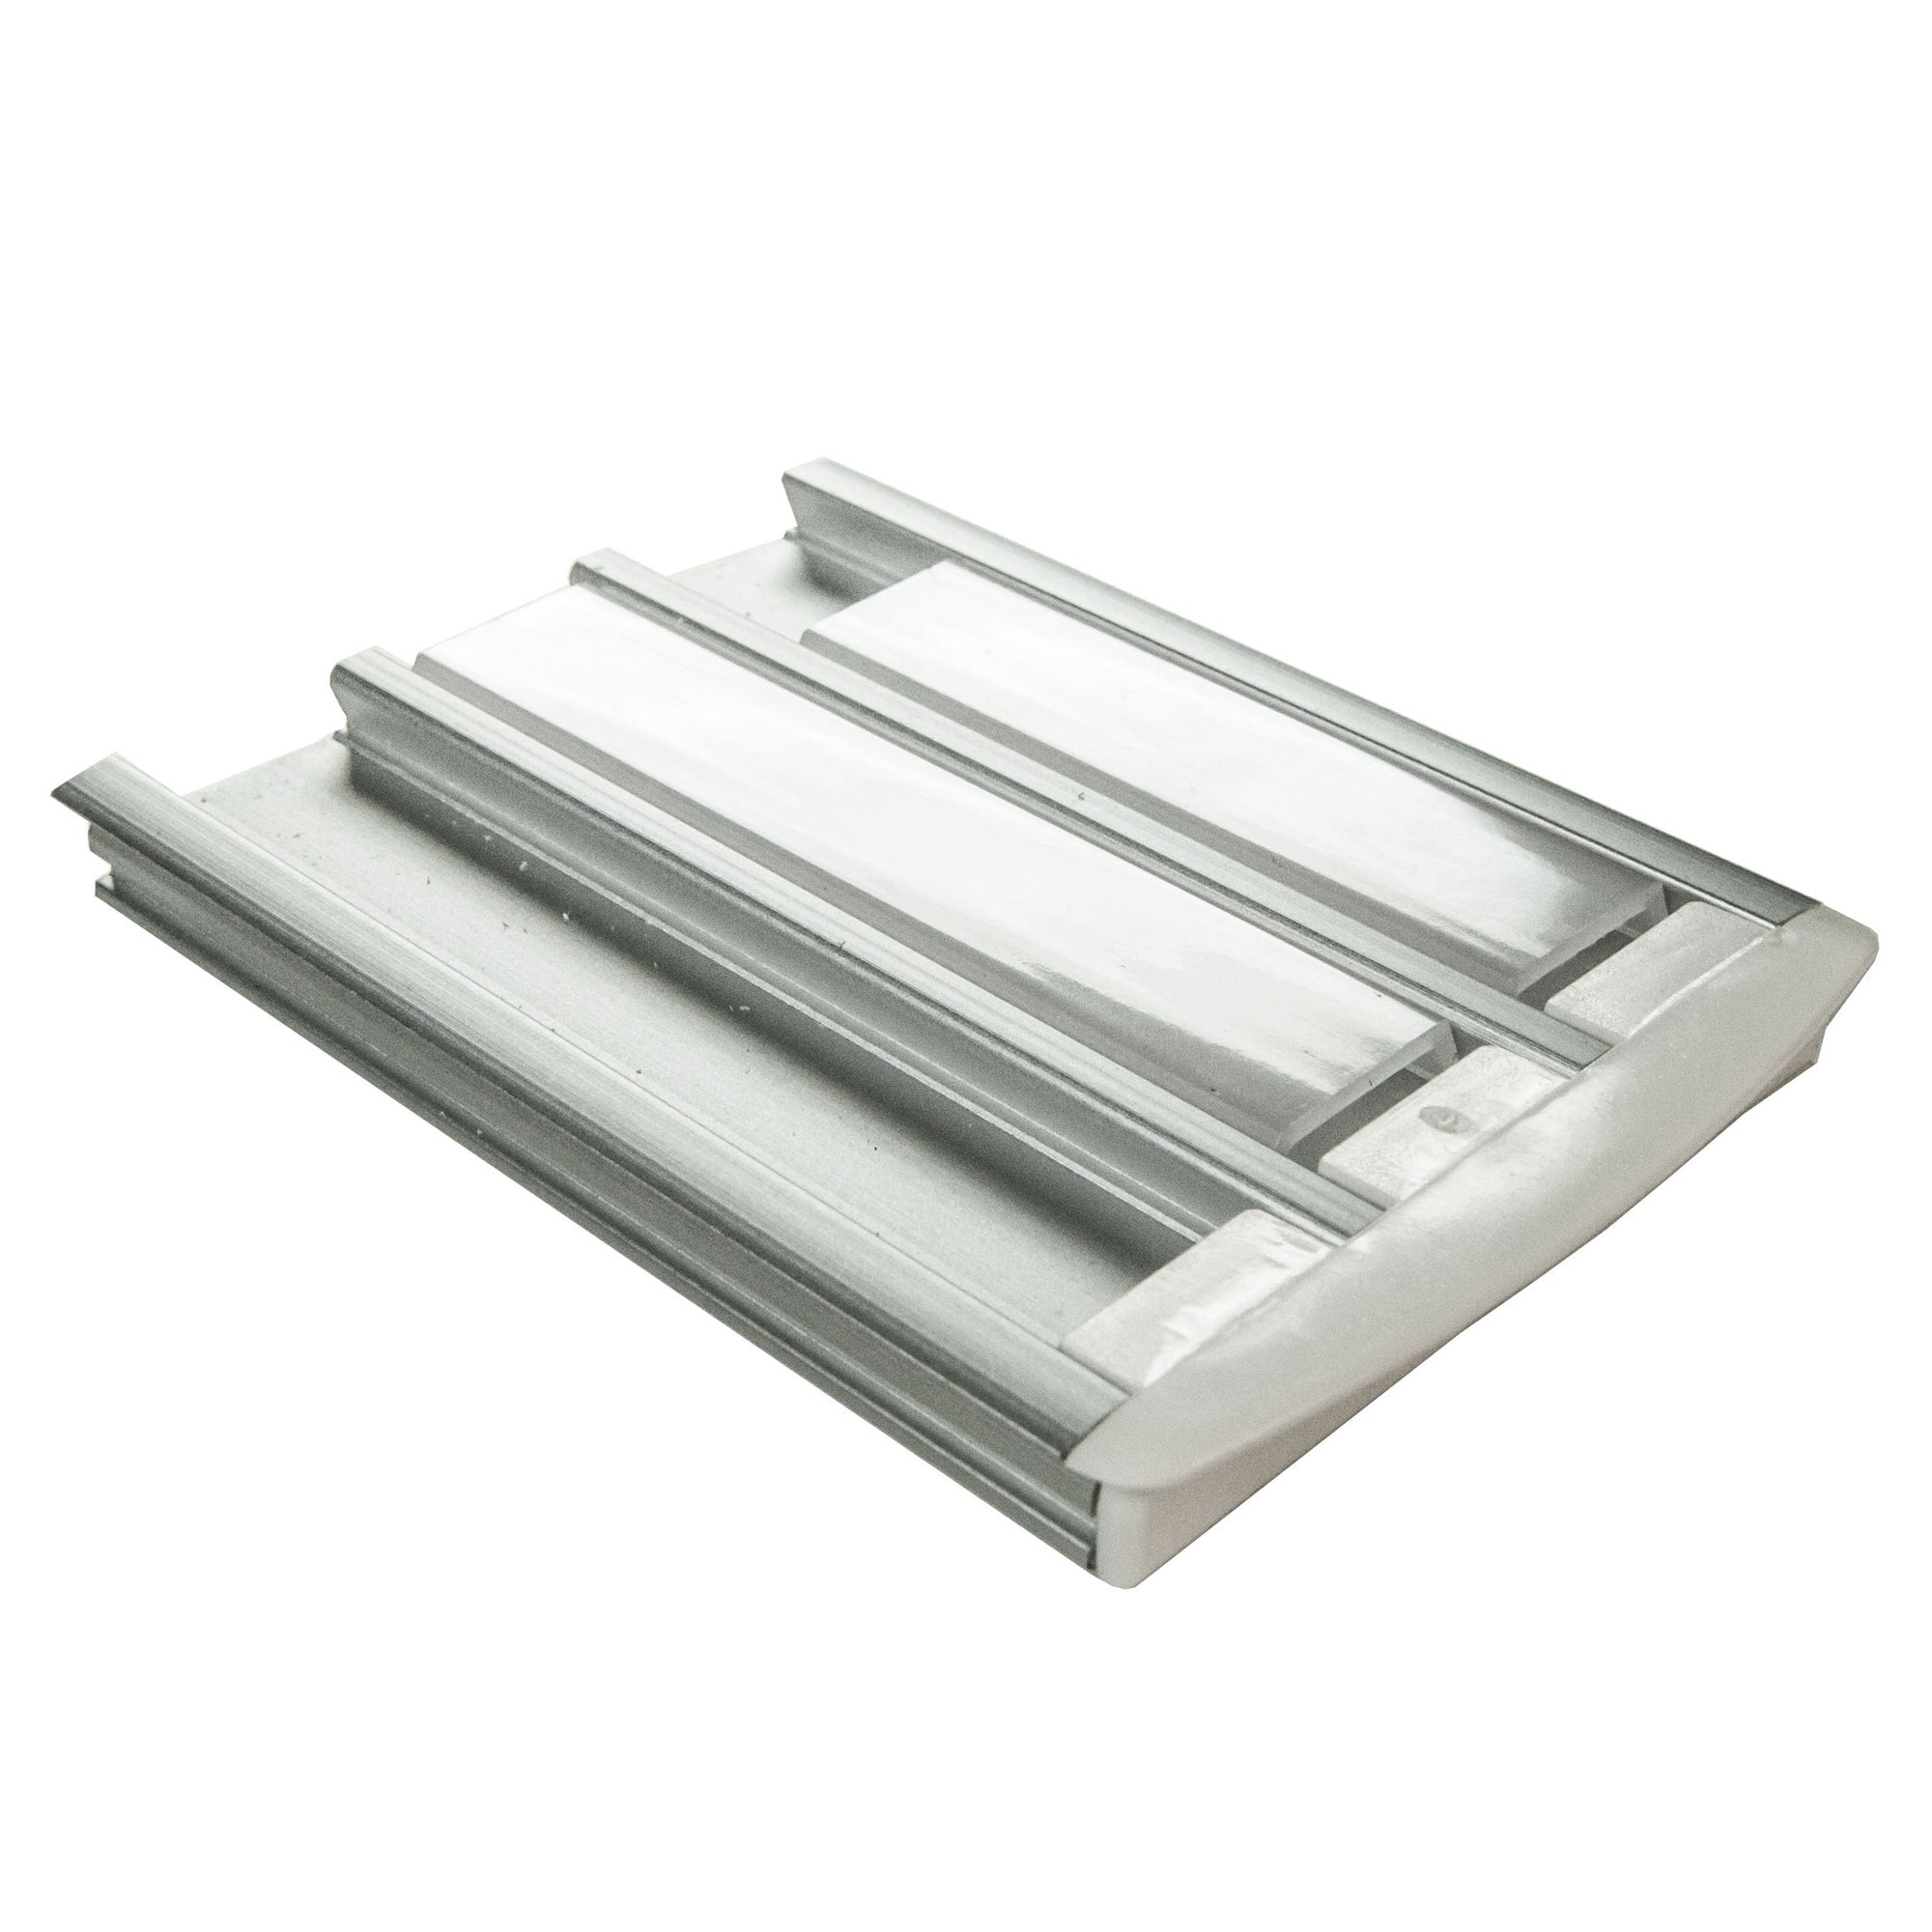 Aluminum Channel - MOSS-ALM-6009 - Moss LED